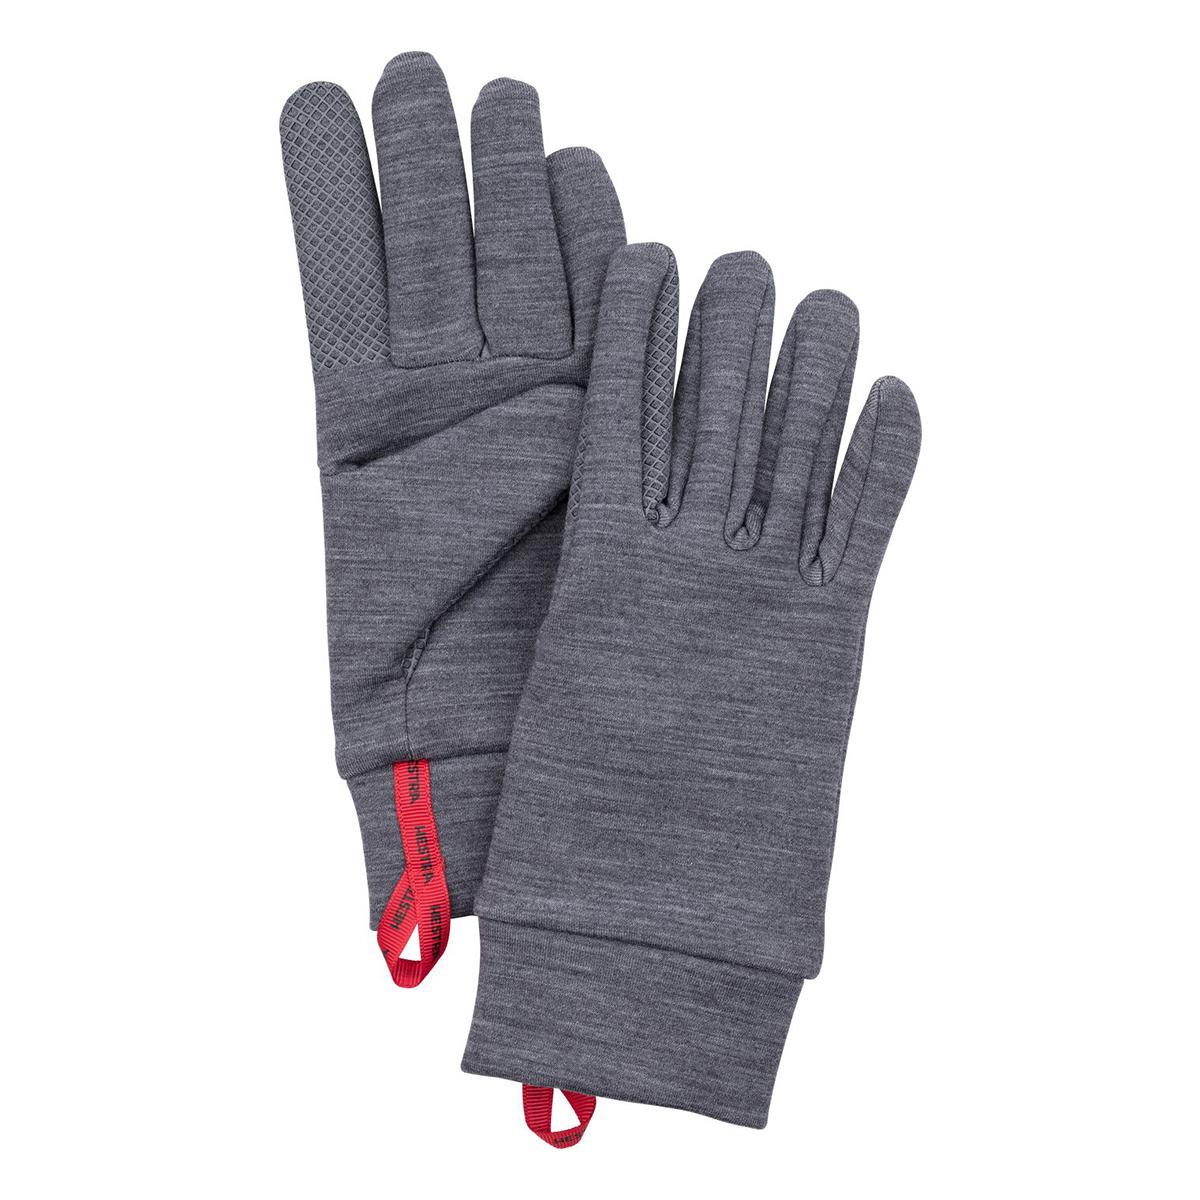 Hestra Touch Point Warmth Glove Liner in grey